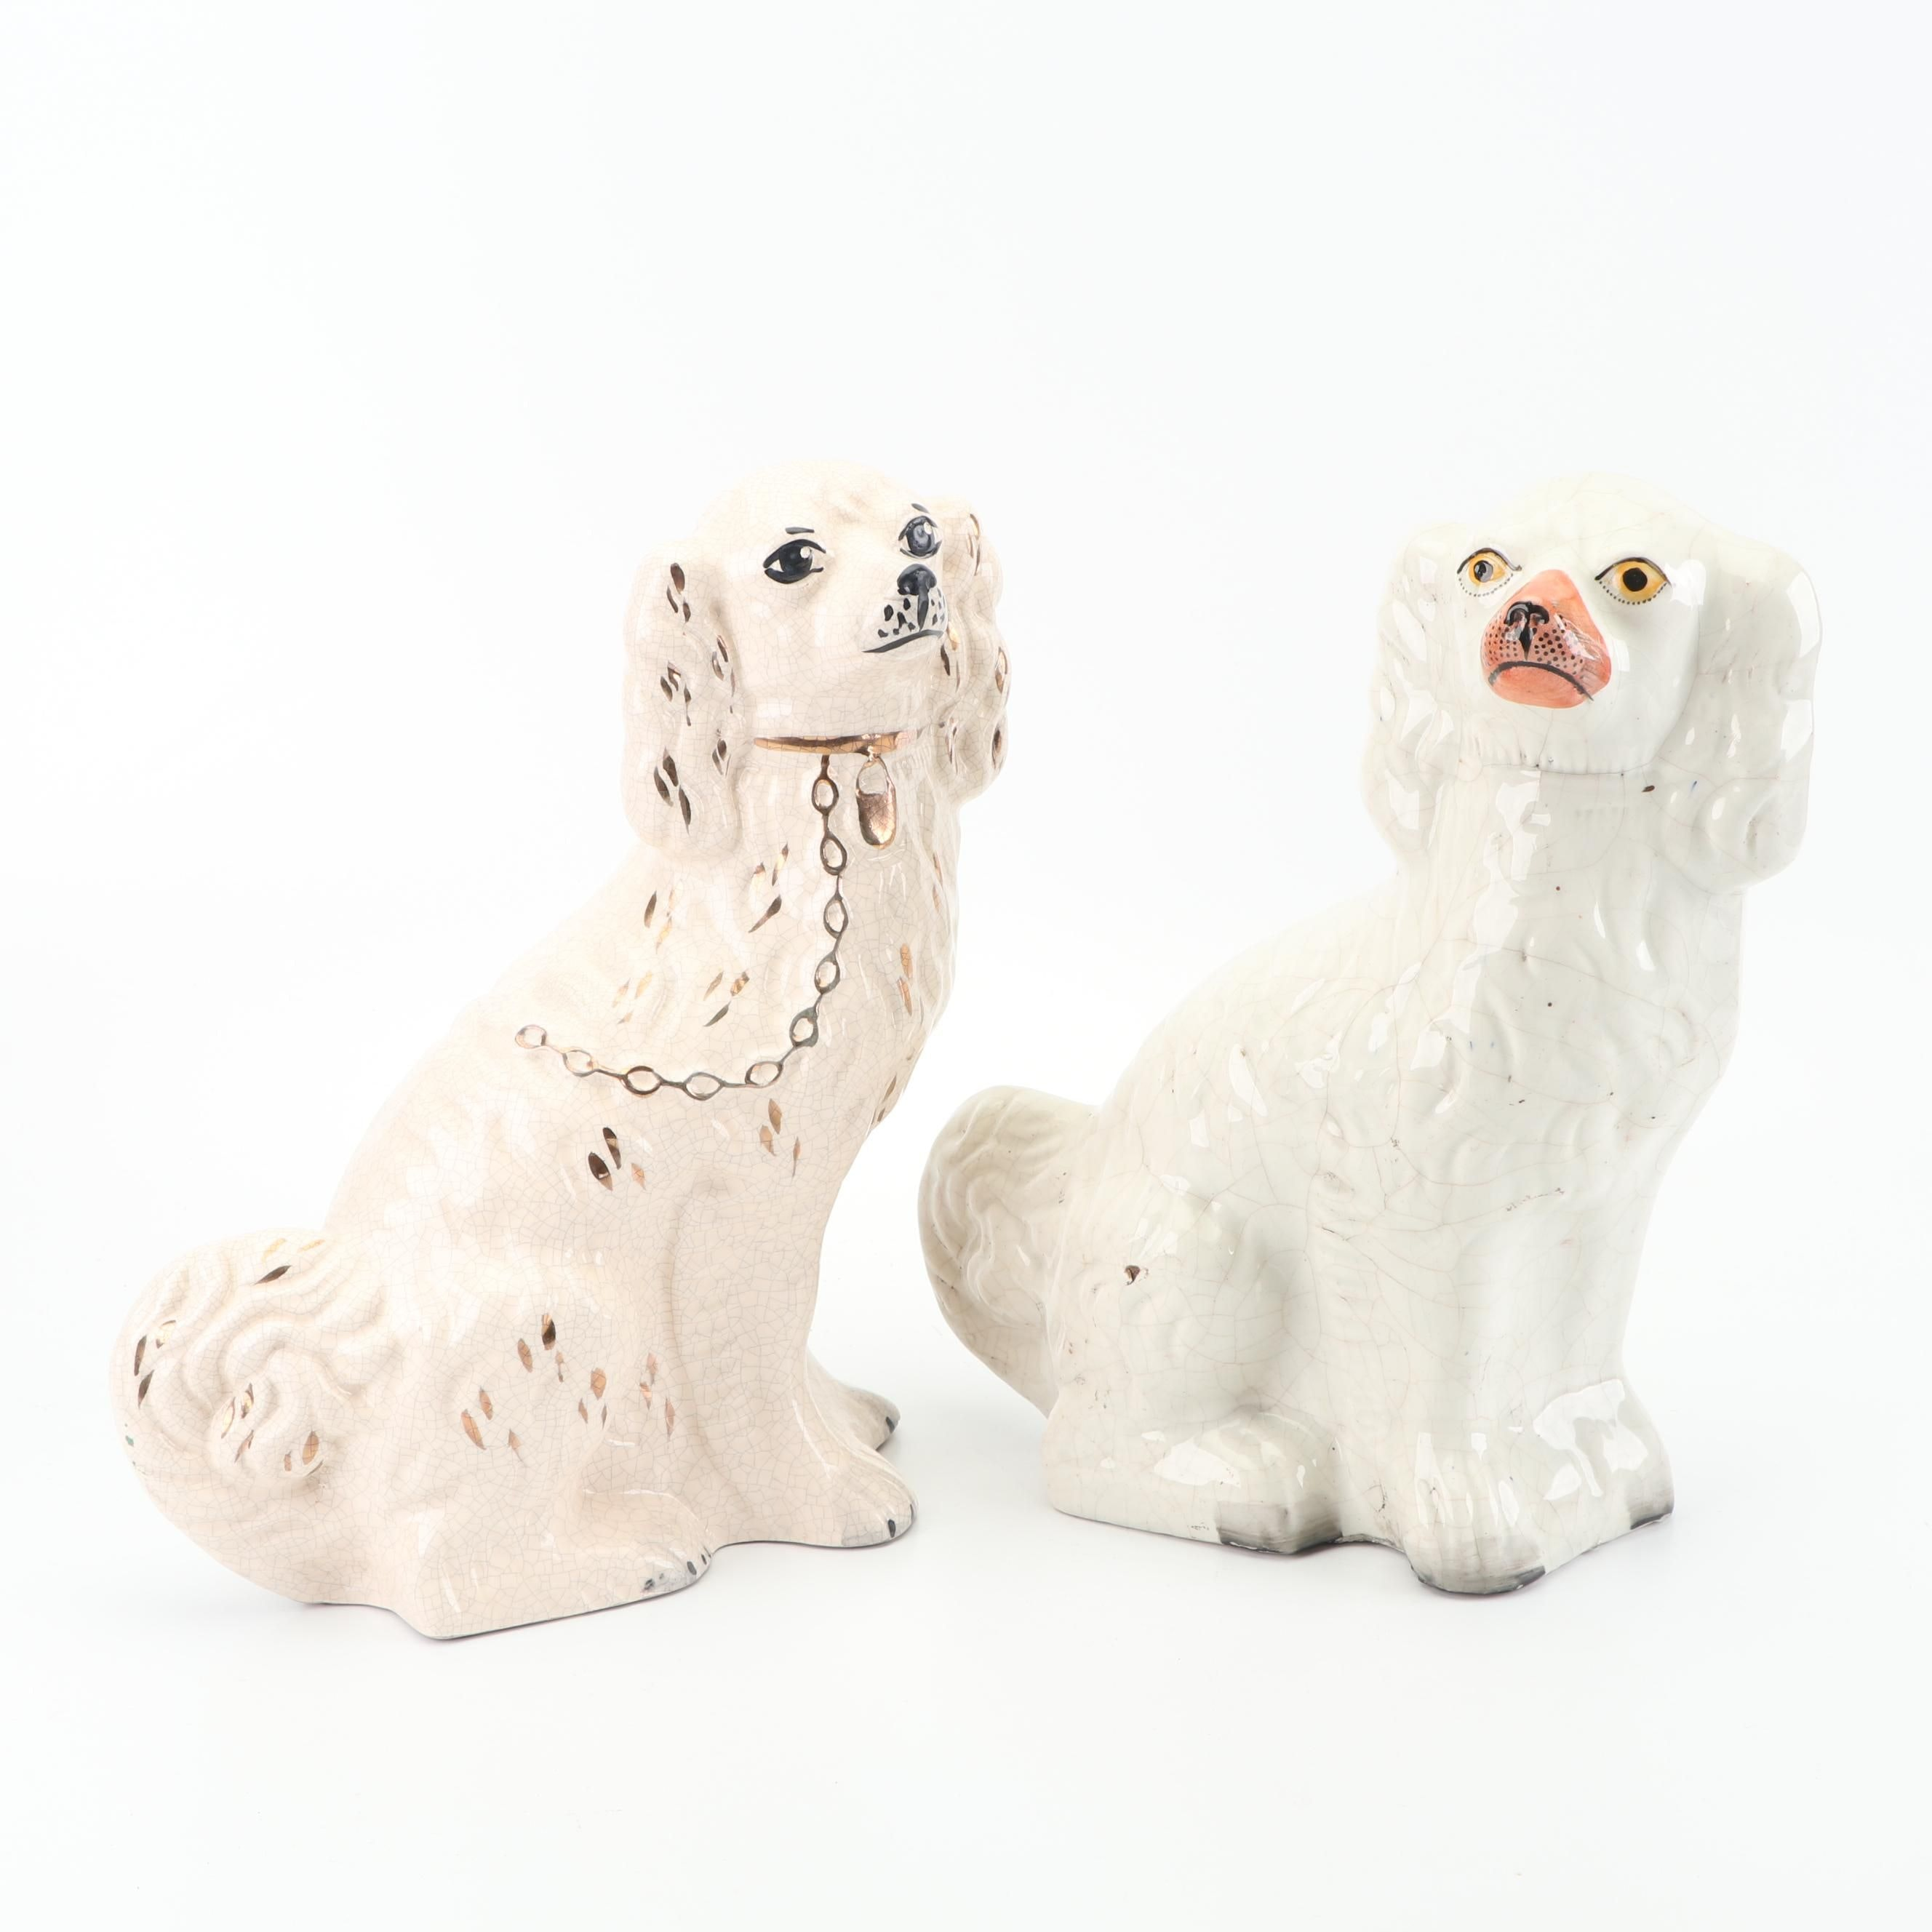 Vintage Staffordshire Style Porcelain Spaniel Figurines